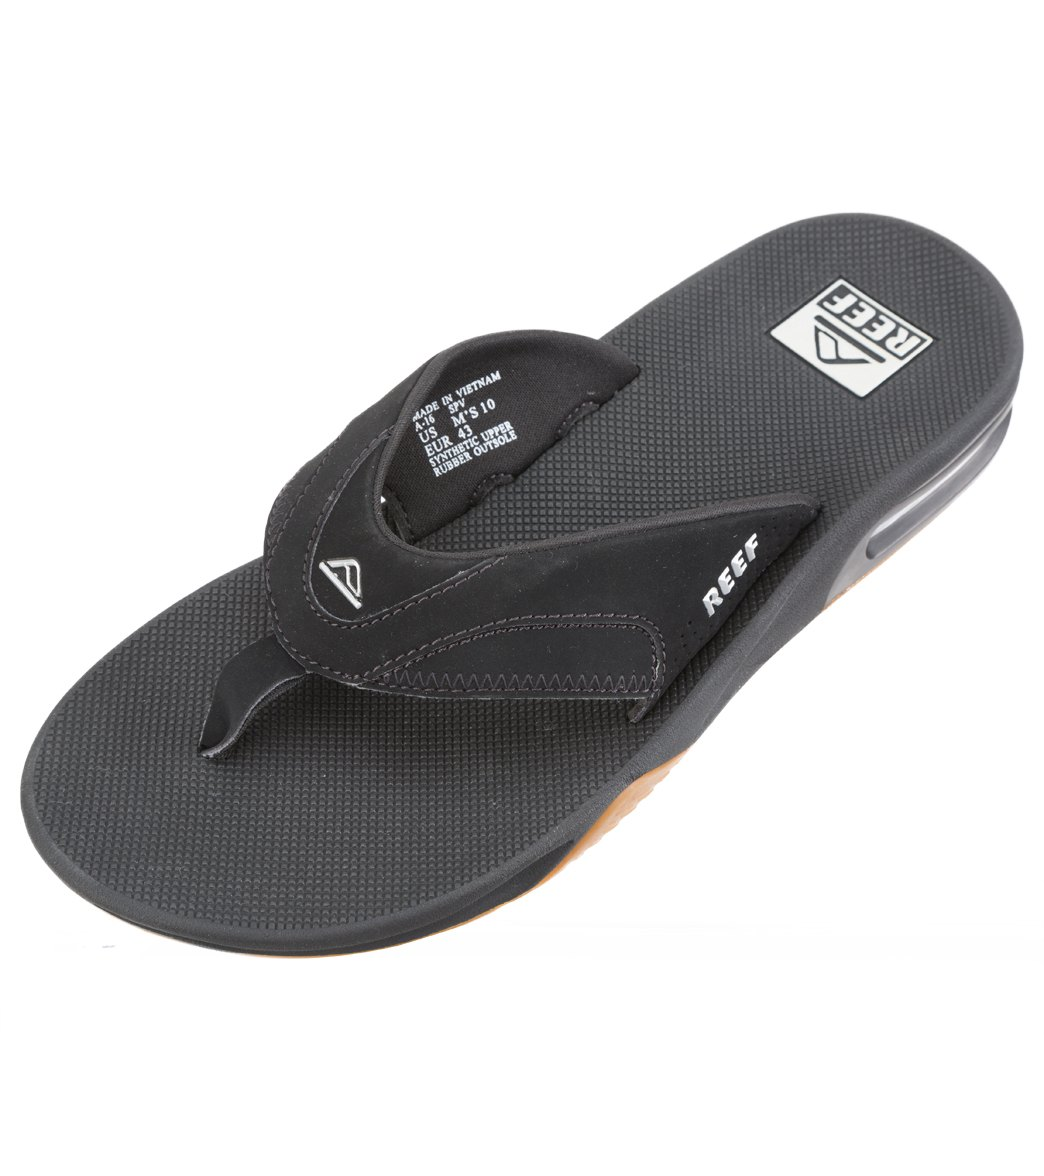 0aadeddb8c1 Reef Men s Fanning Flip Flop at SwimOutlet.com - Free Shipping